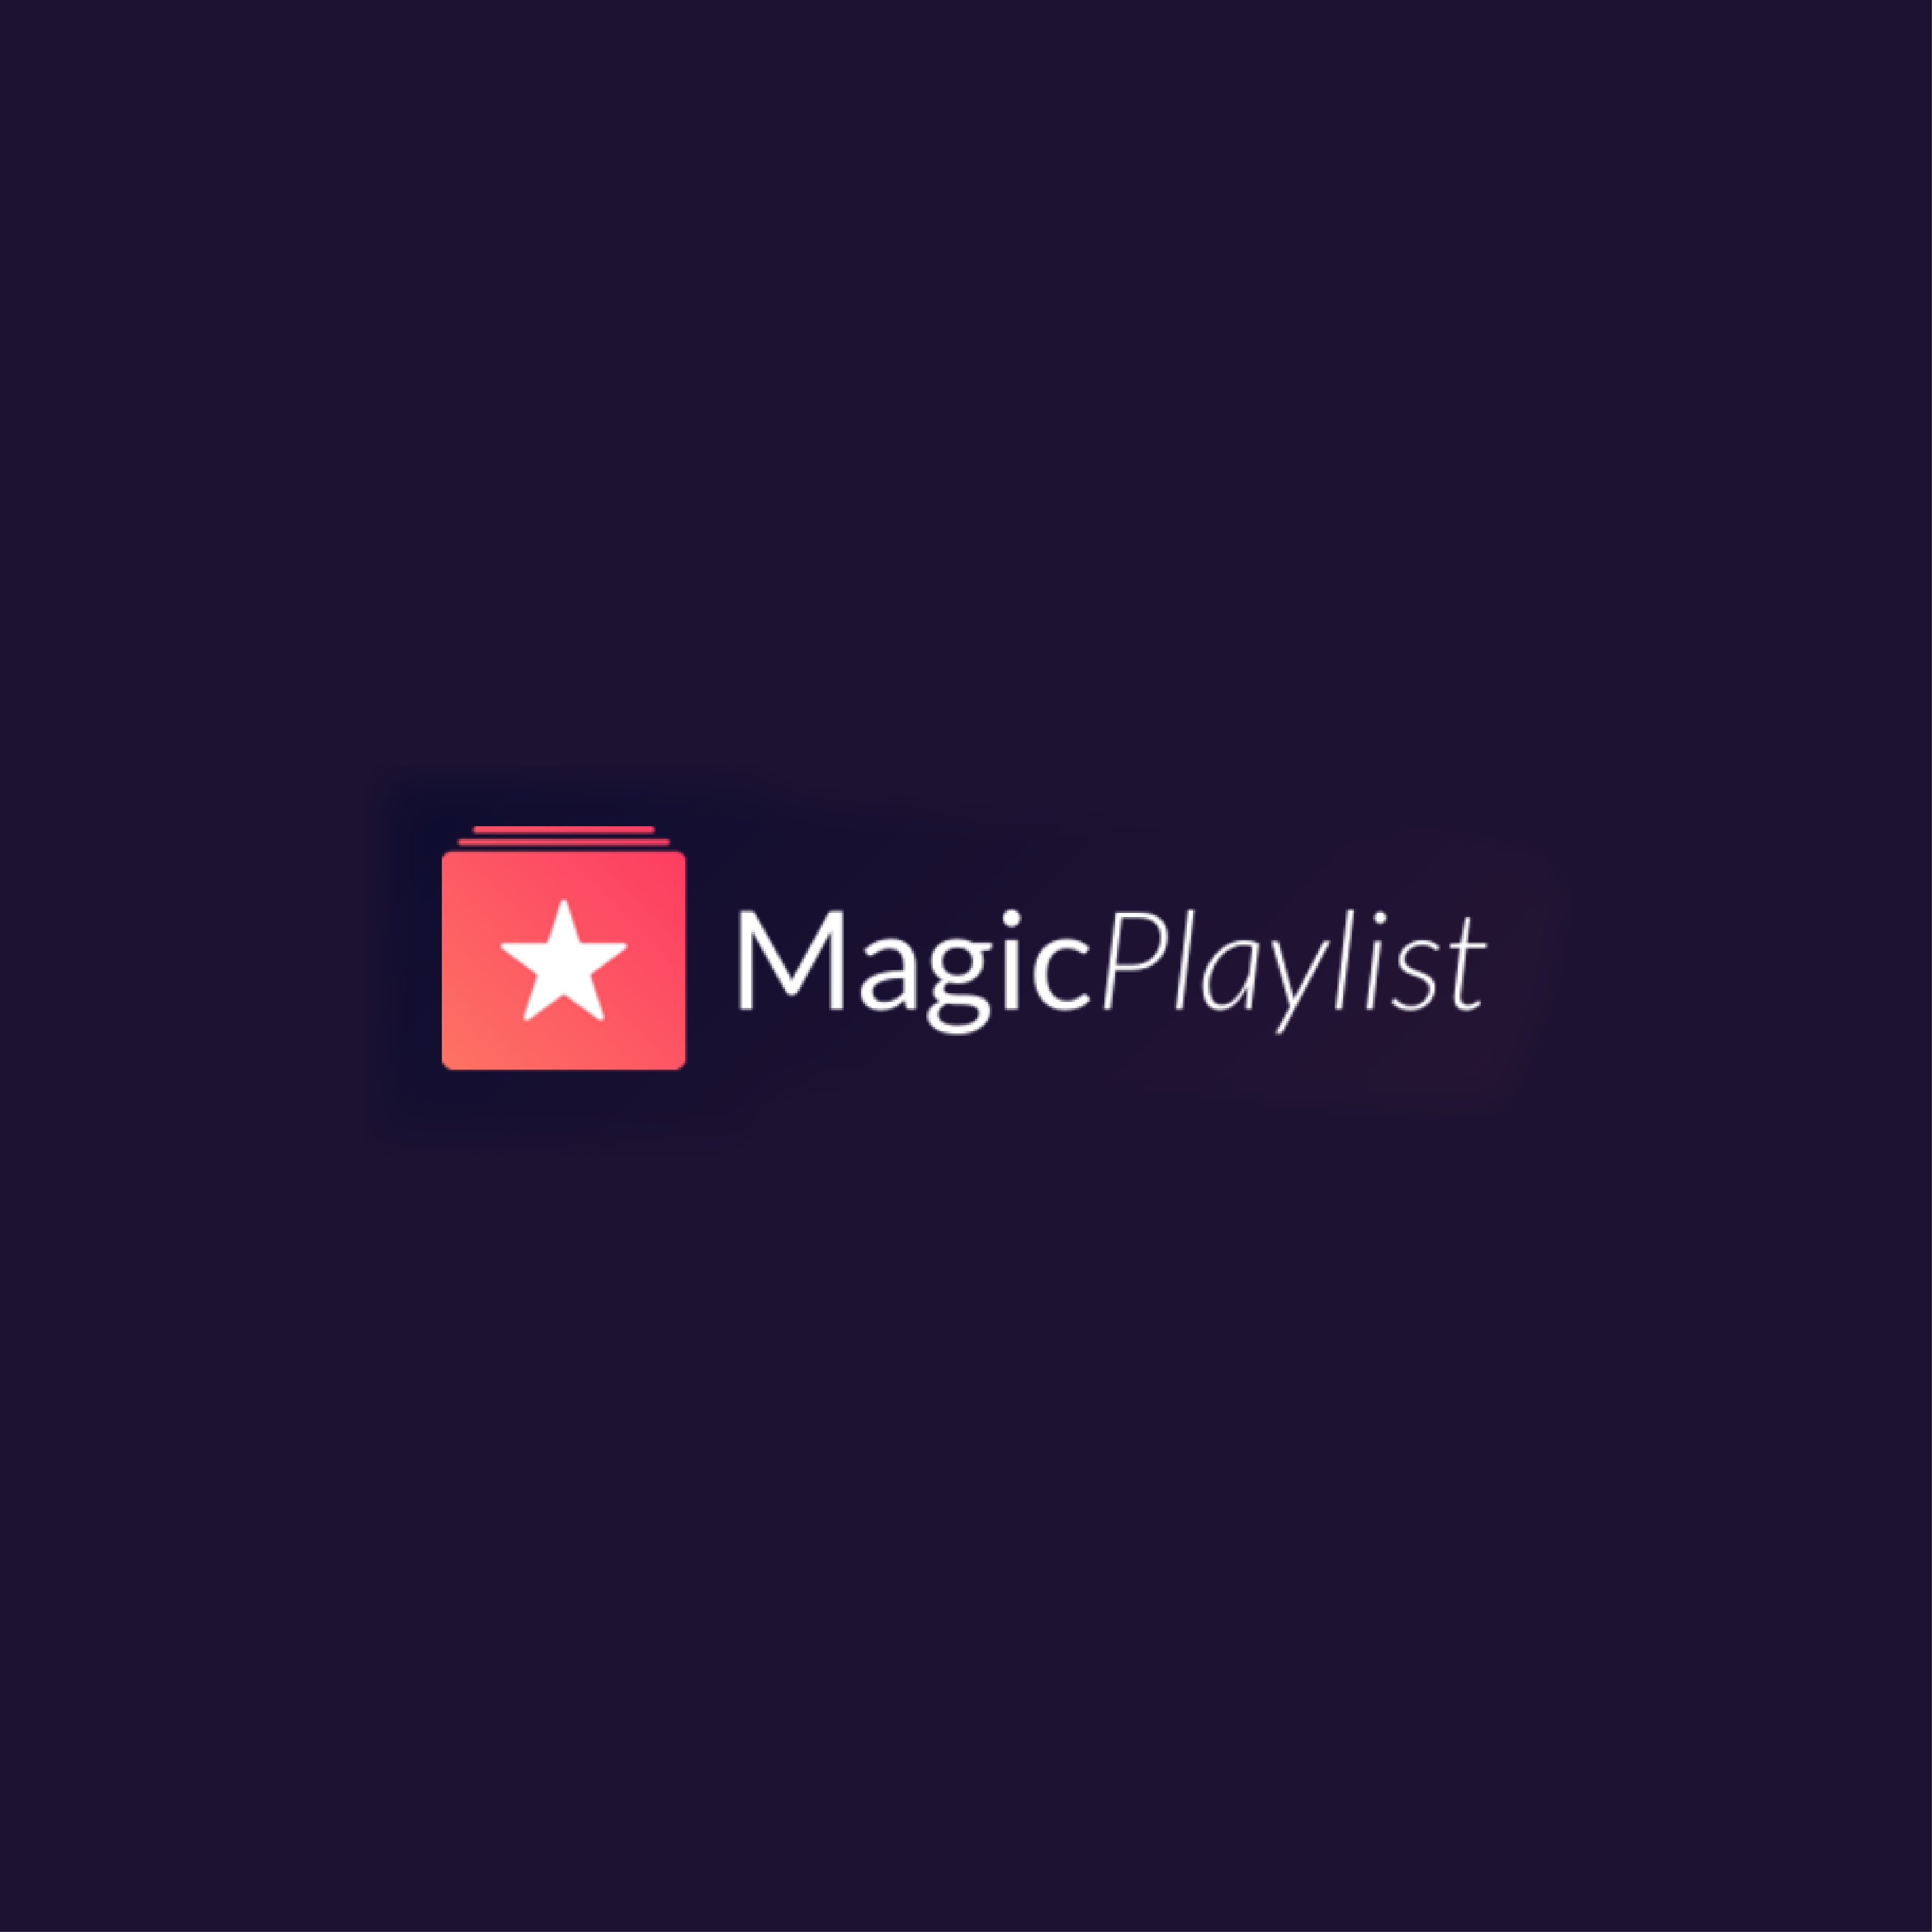 thumbnail for magic-playlist/image.png